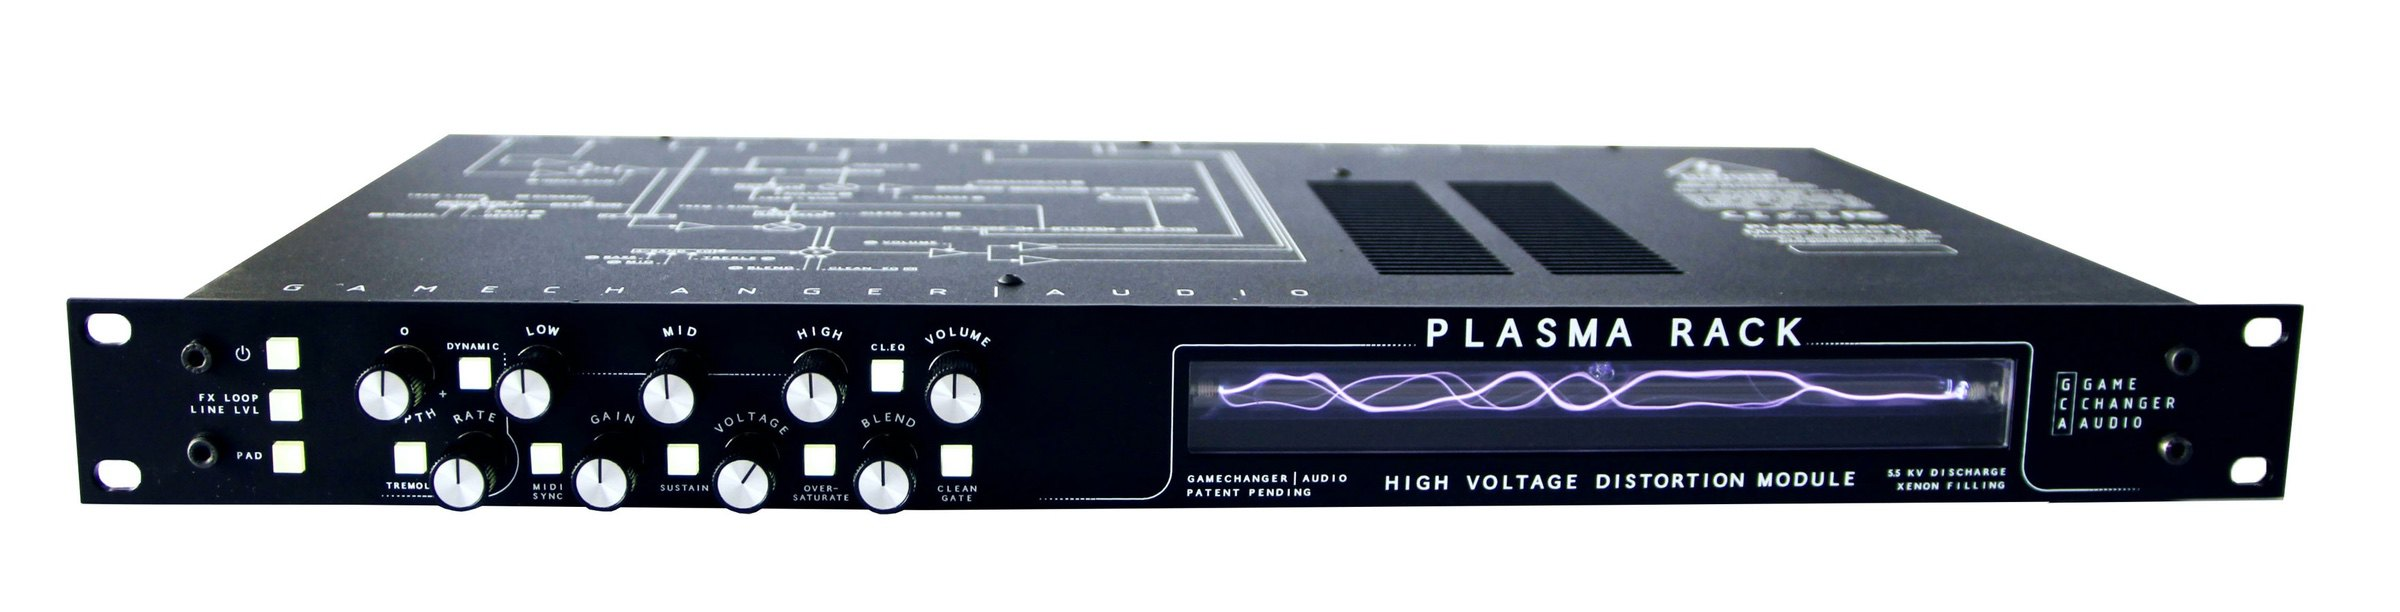 Gamechanger-Audio-Plasma-Rack-5